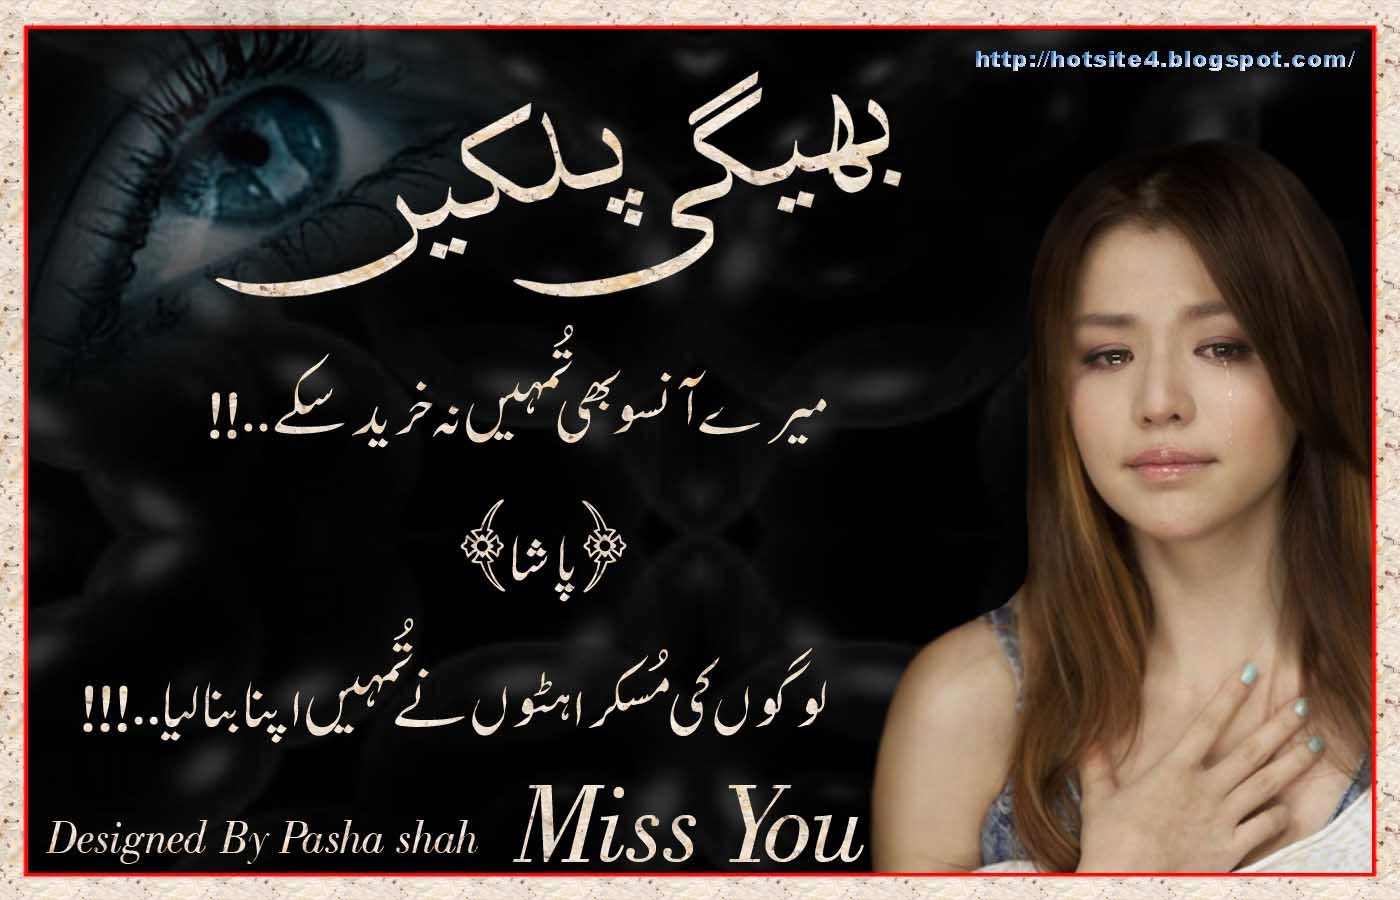 49+] Sad Urdu Poetry HD Wallpaper on WallpaperSafari